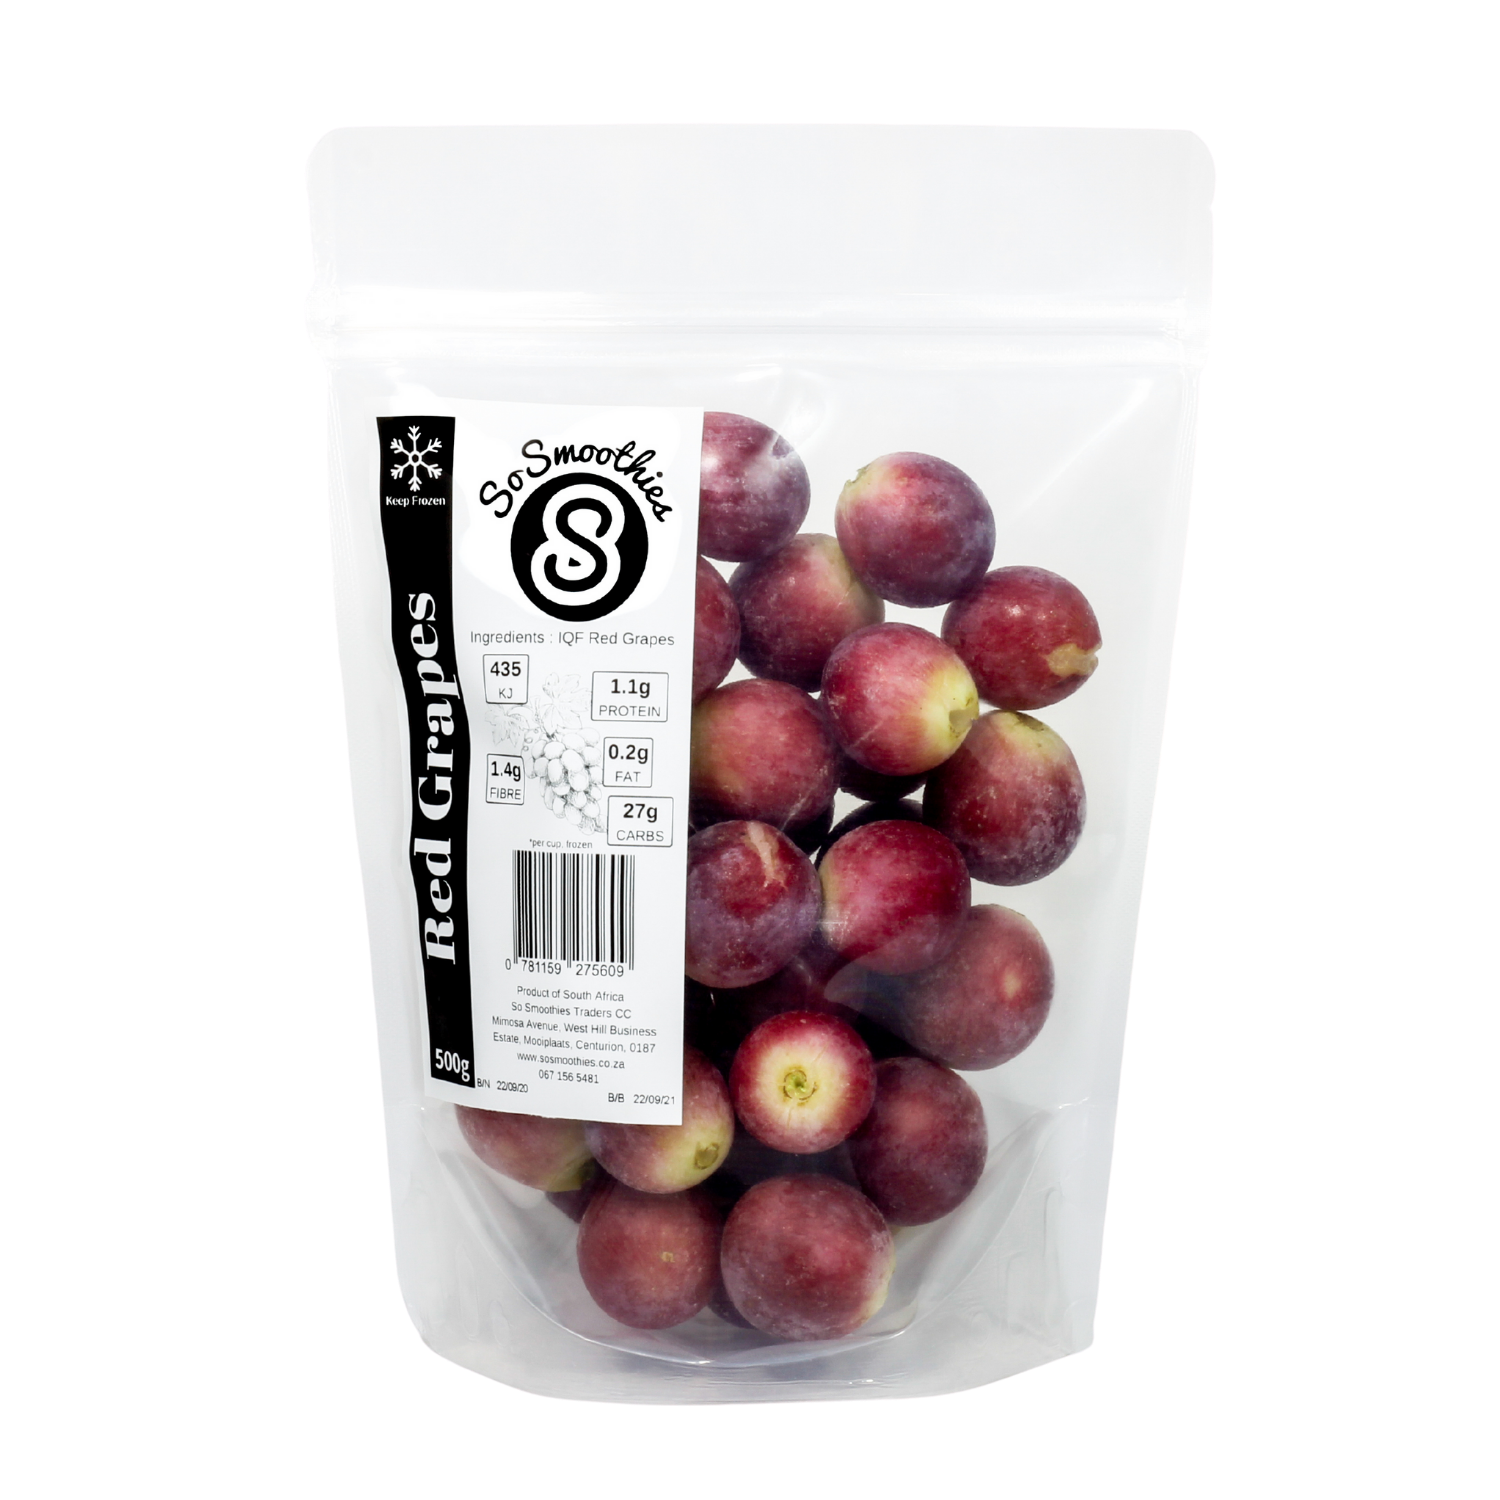 IQF Red Grapes